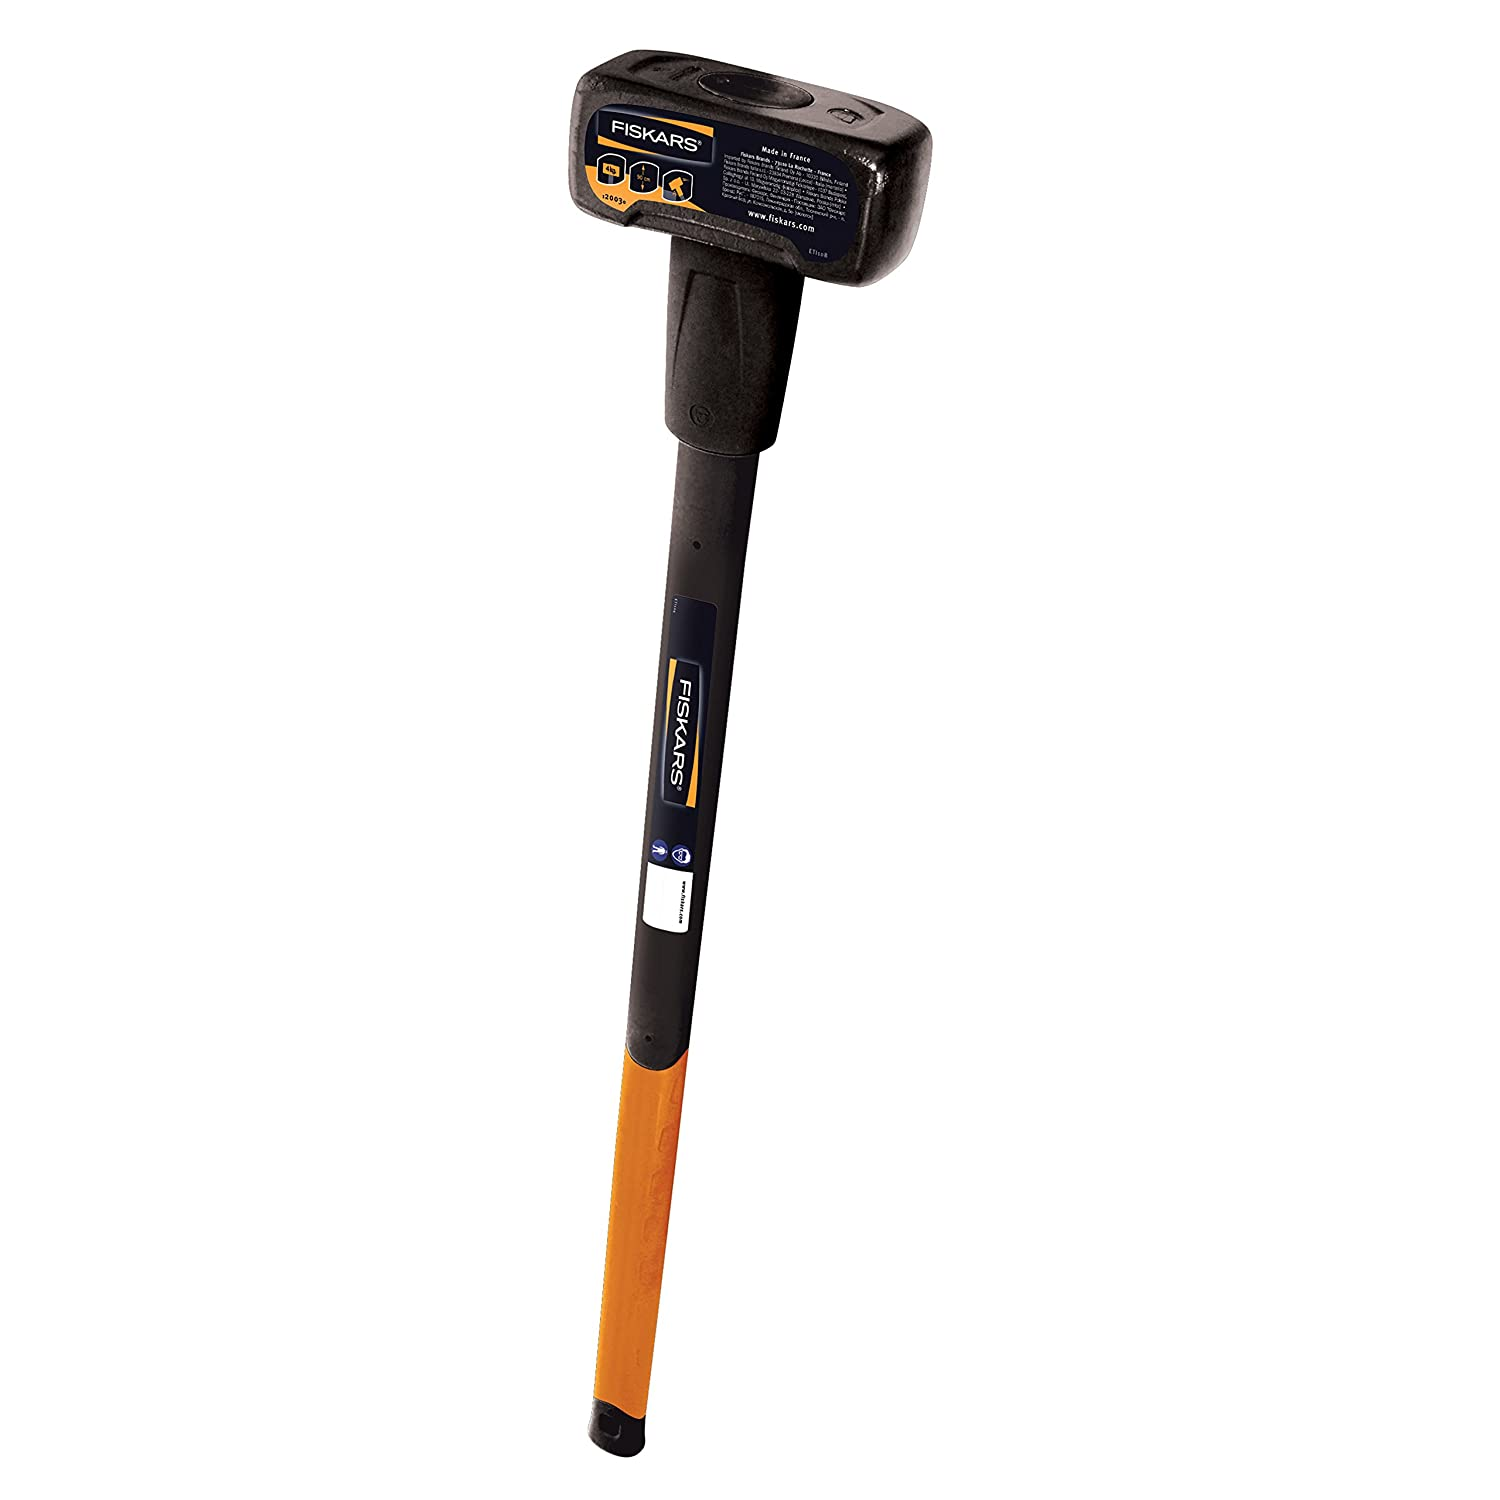 Fiskars 1001431 Sledge Hammer XL Amazoncouk Garden Outdoors